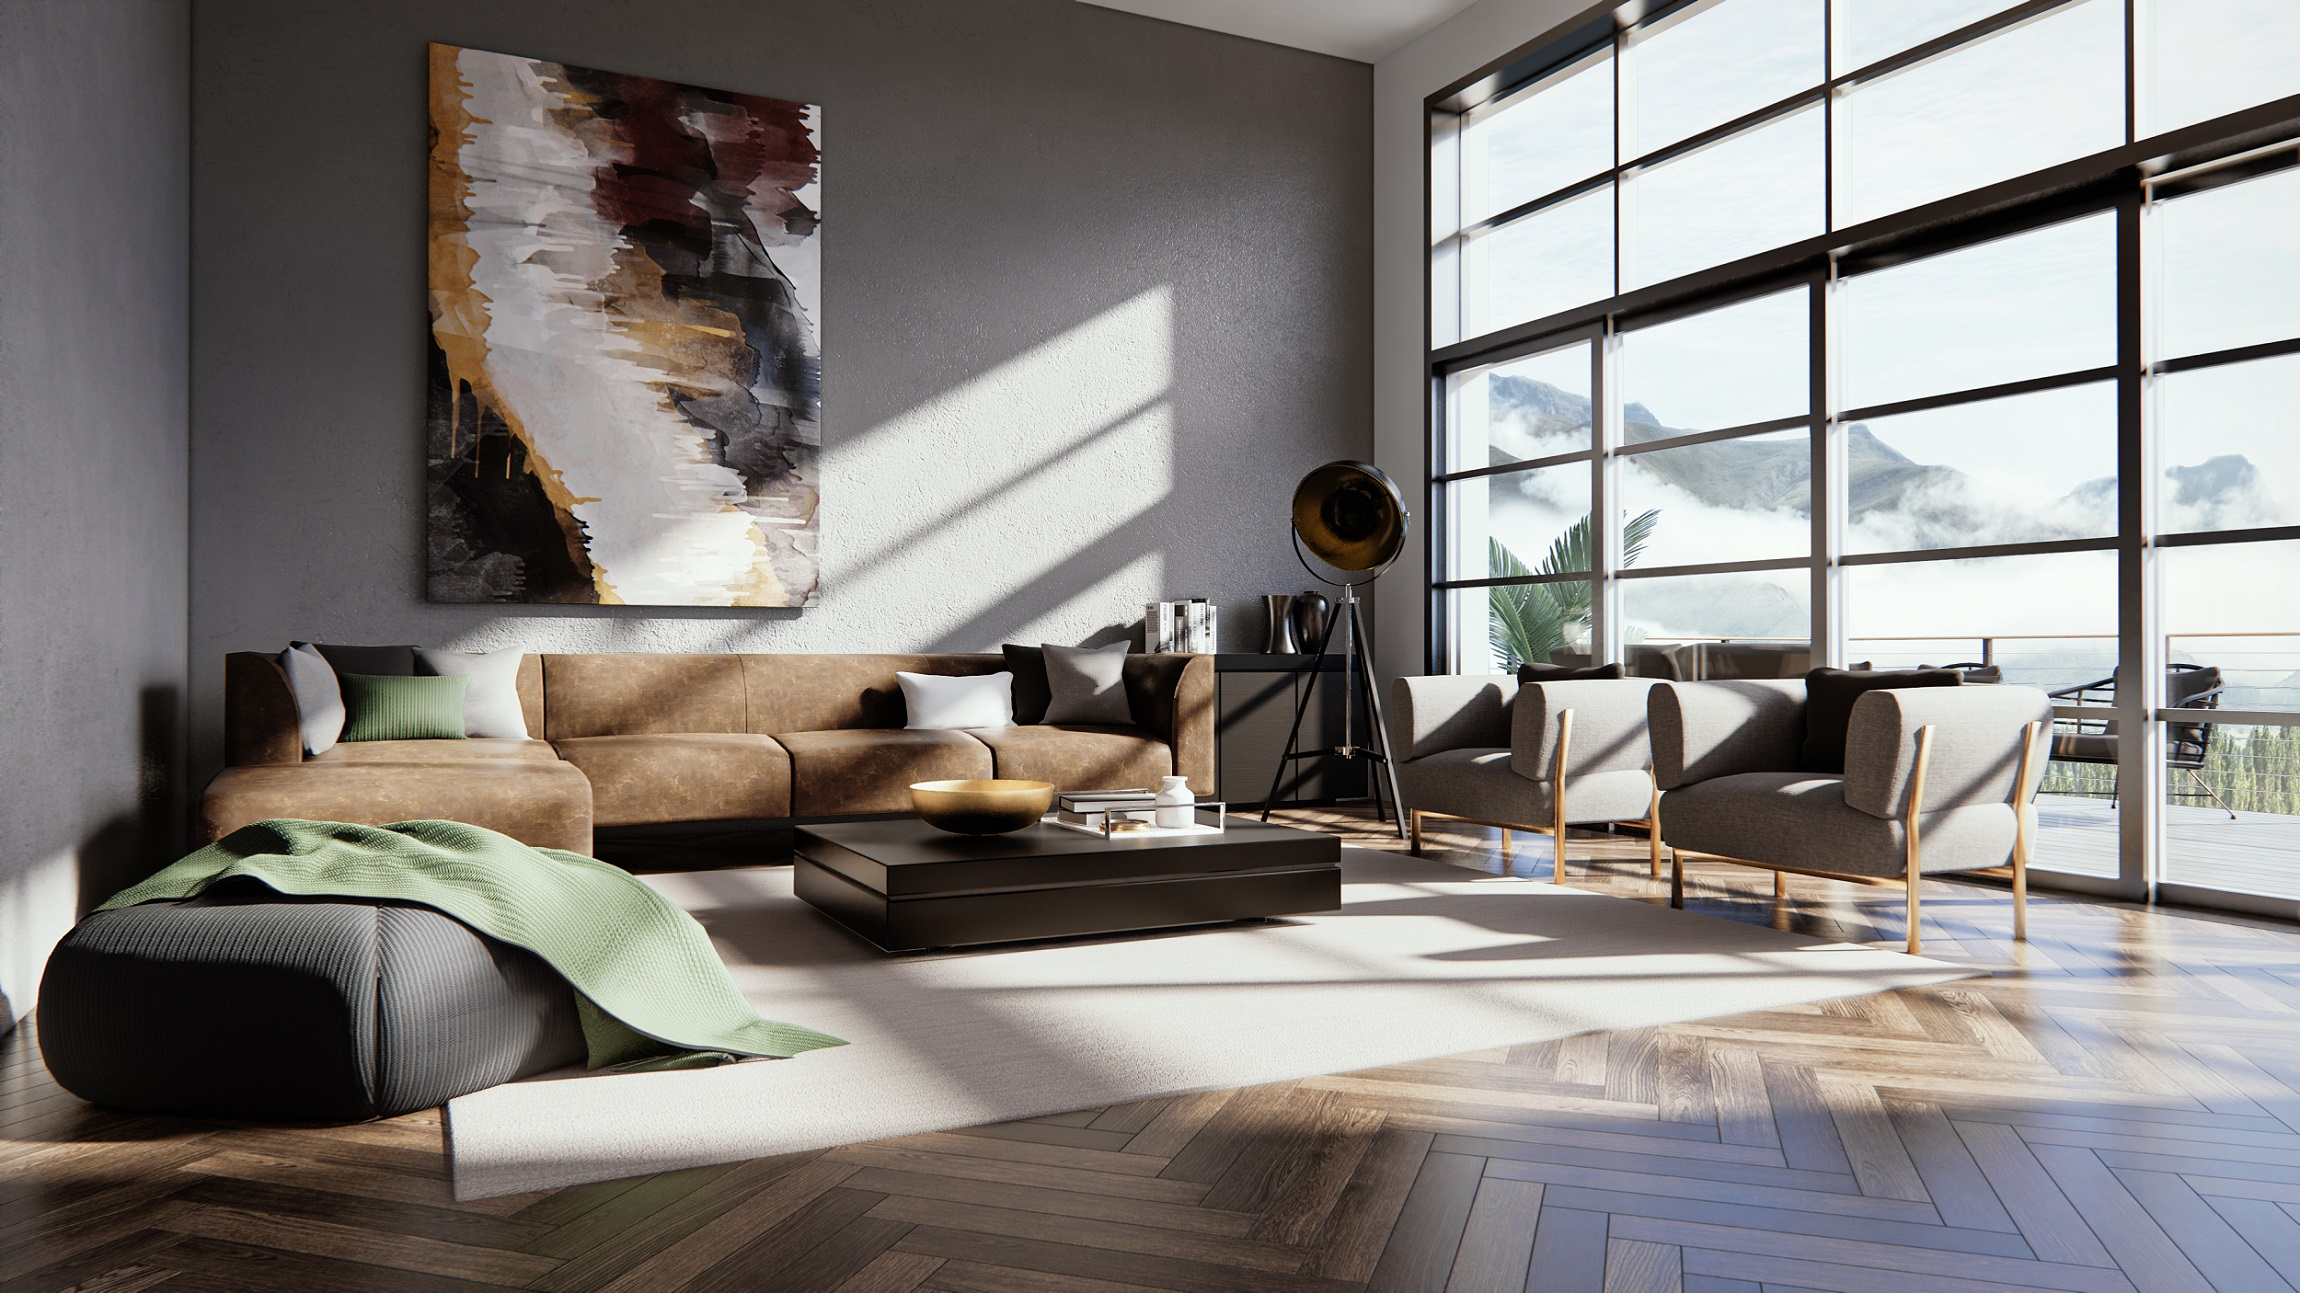 An example of a Vectorworks interior scene rendered with Enscape